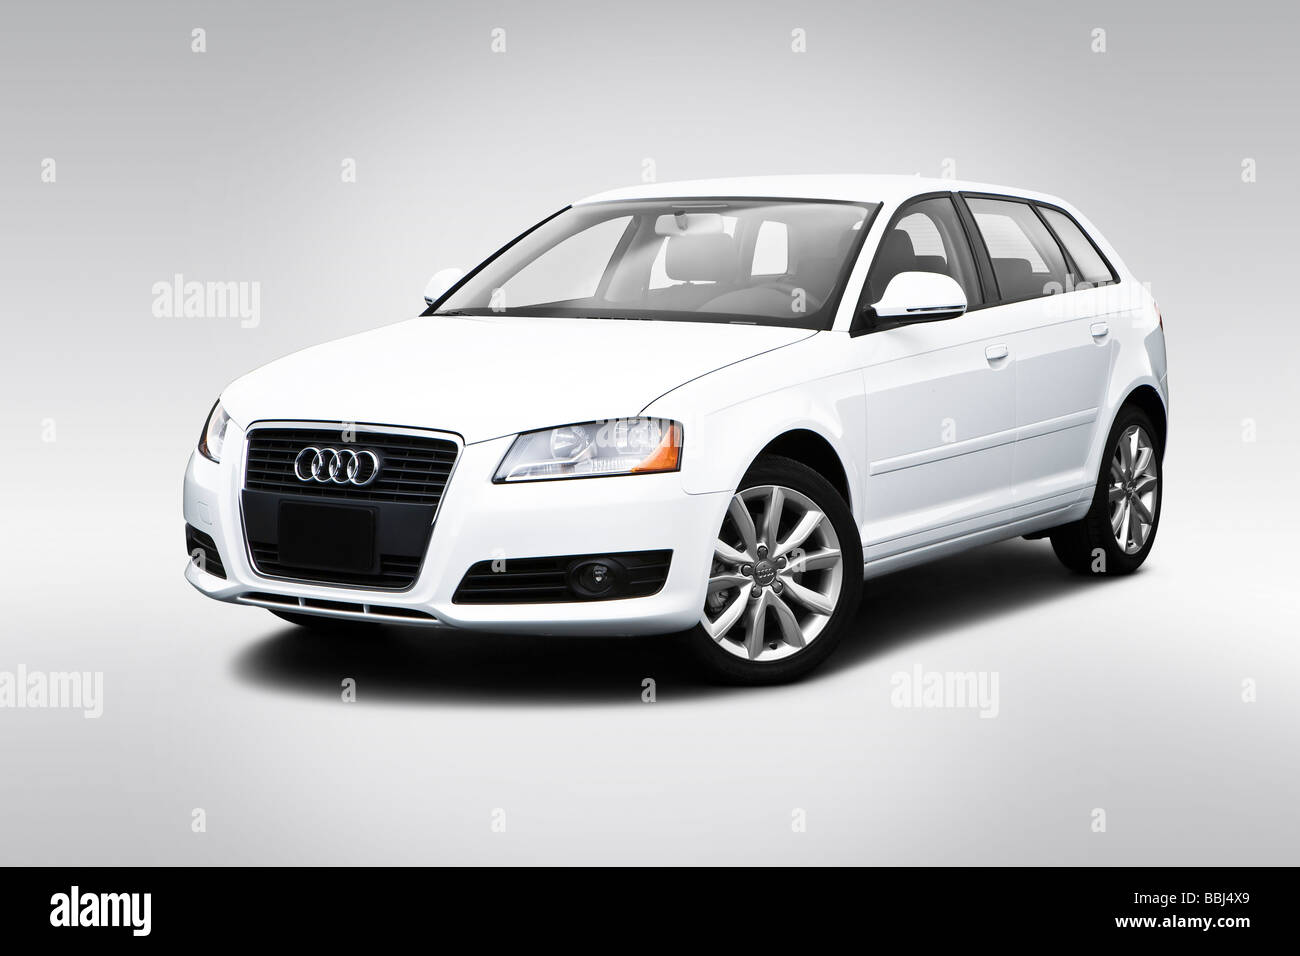 2009 Audi A3 2.0T in White - Front angle view - Stock Image